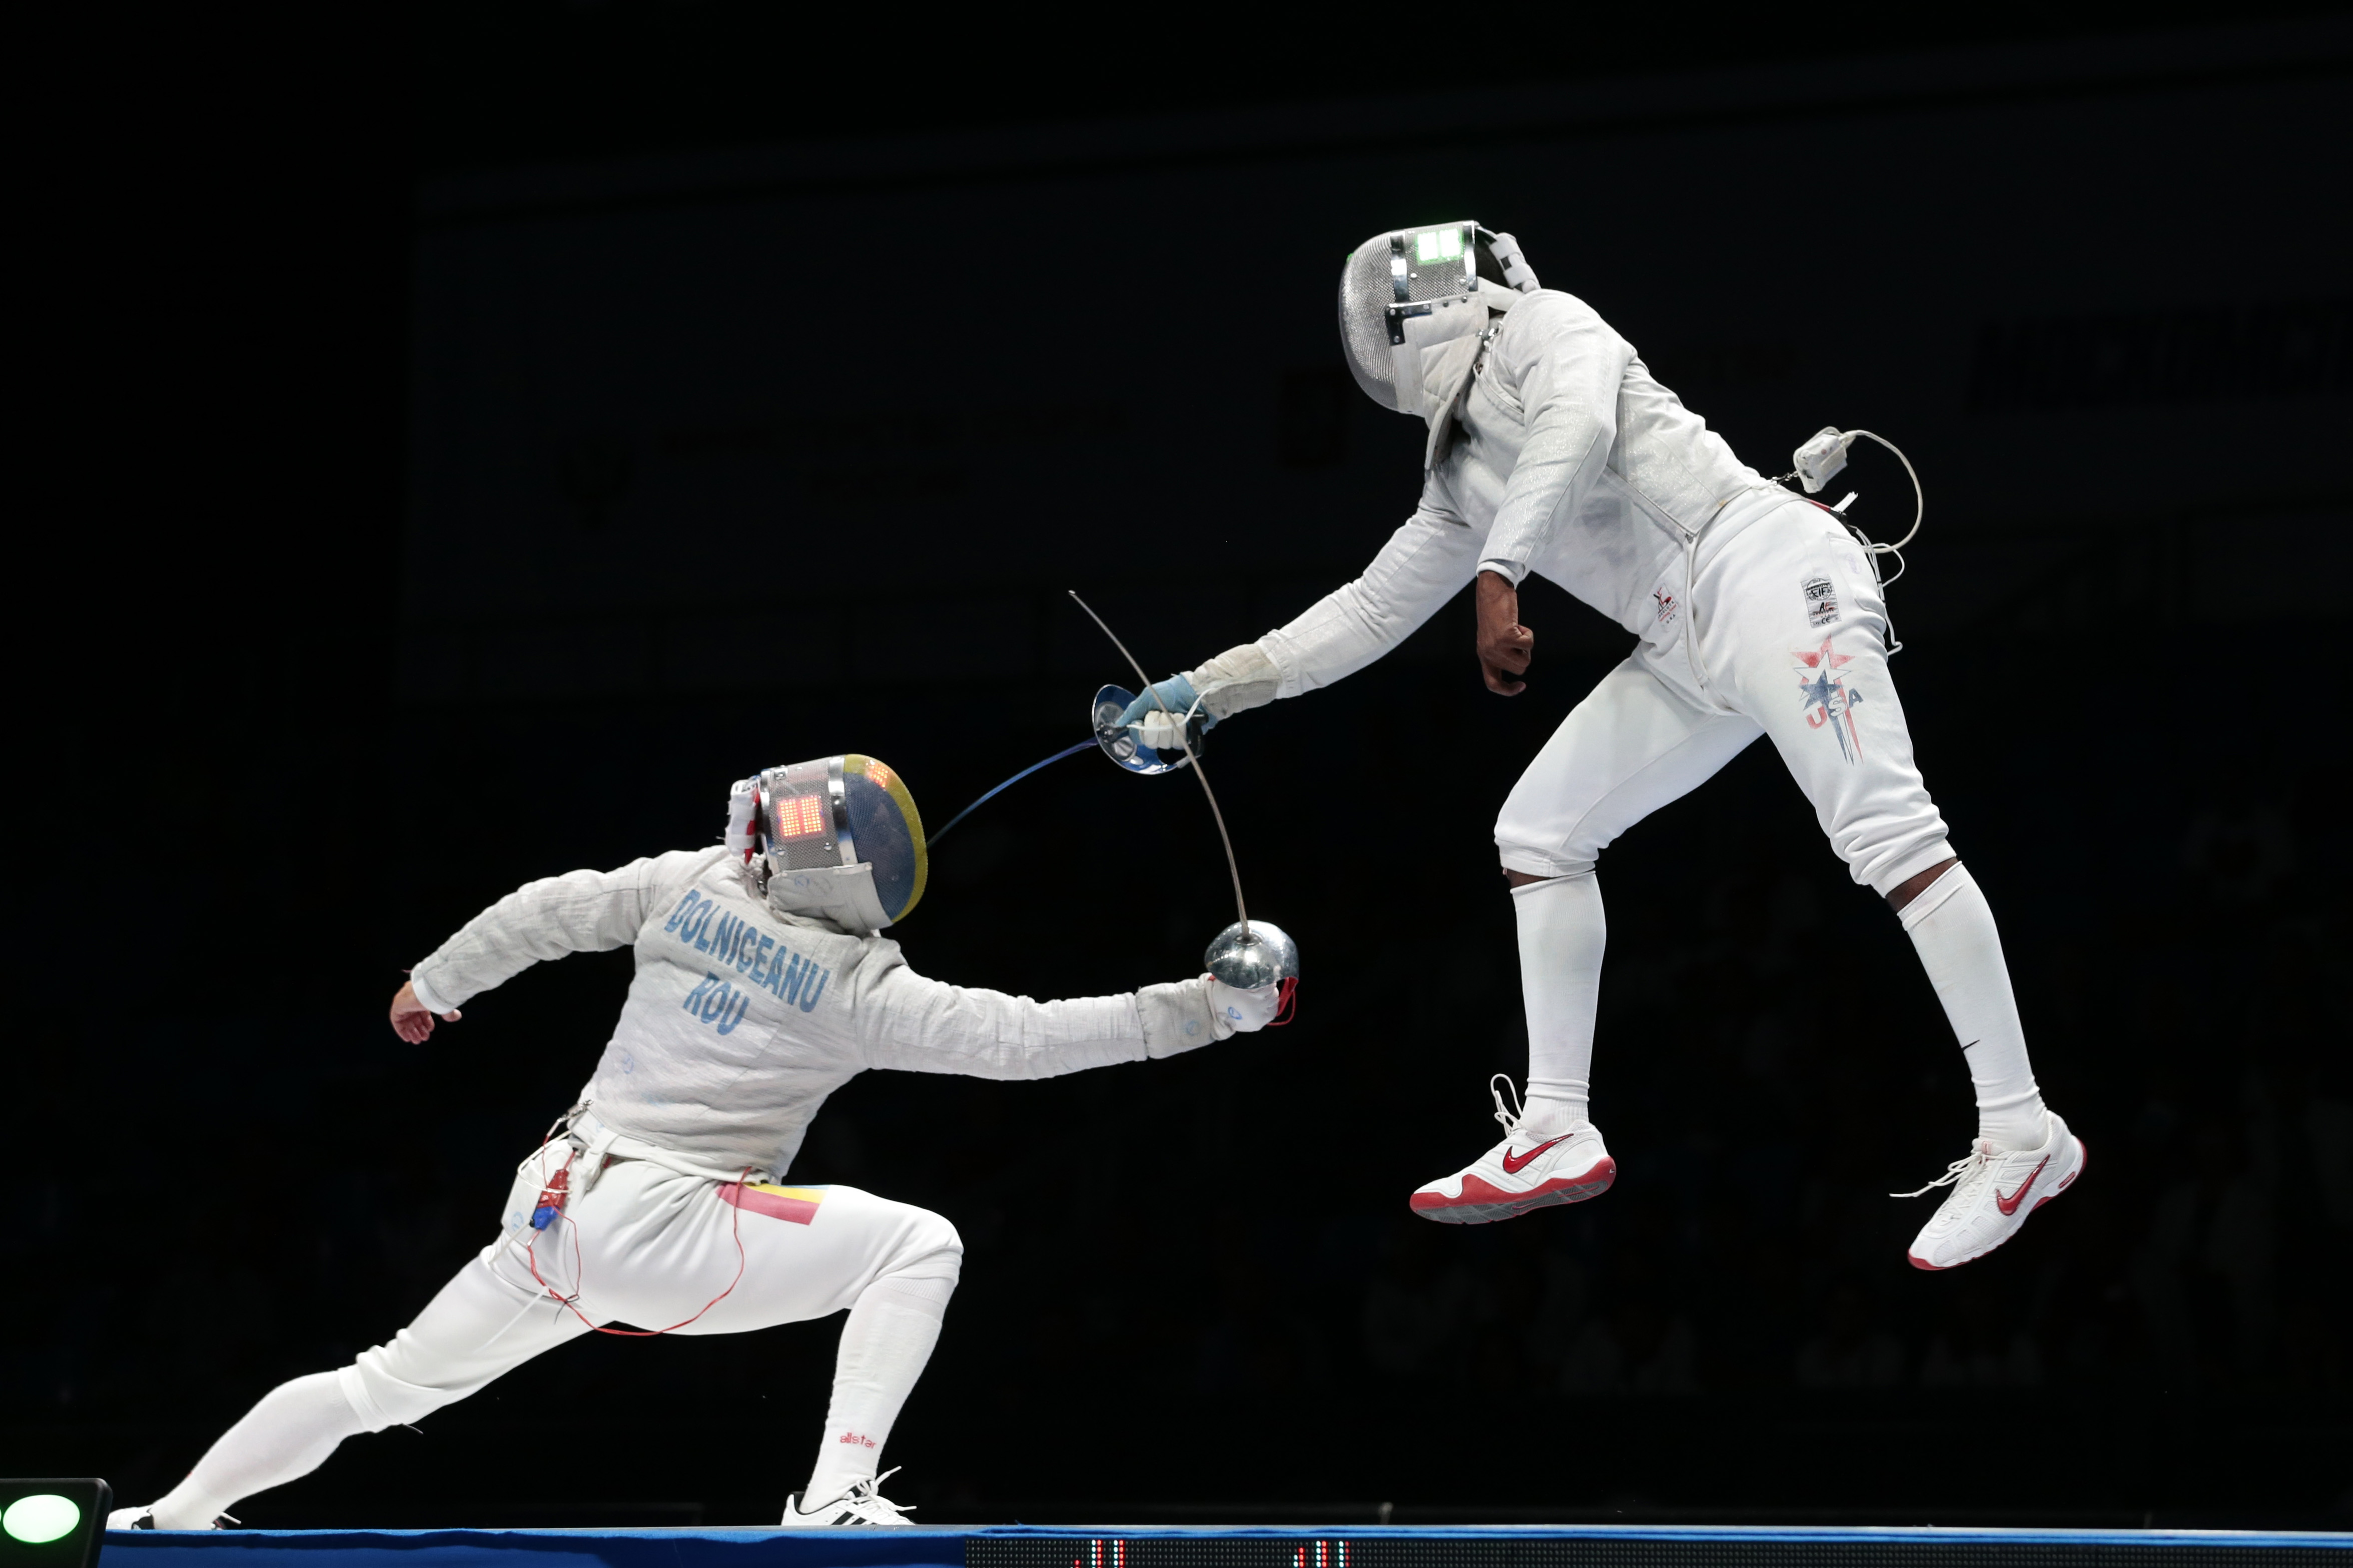 Tiberiu Dolniceanu, of Romania, left, and Daryl Homer, of the United States, right, in action during his semifinal match at sabre competition at the fencing World championships in Moscow, Russia, on Tuesday, July 14, 2015. (AP Photo/Ivan Sekretarev)